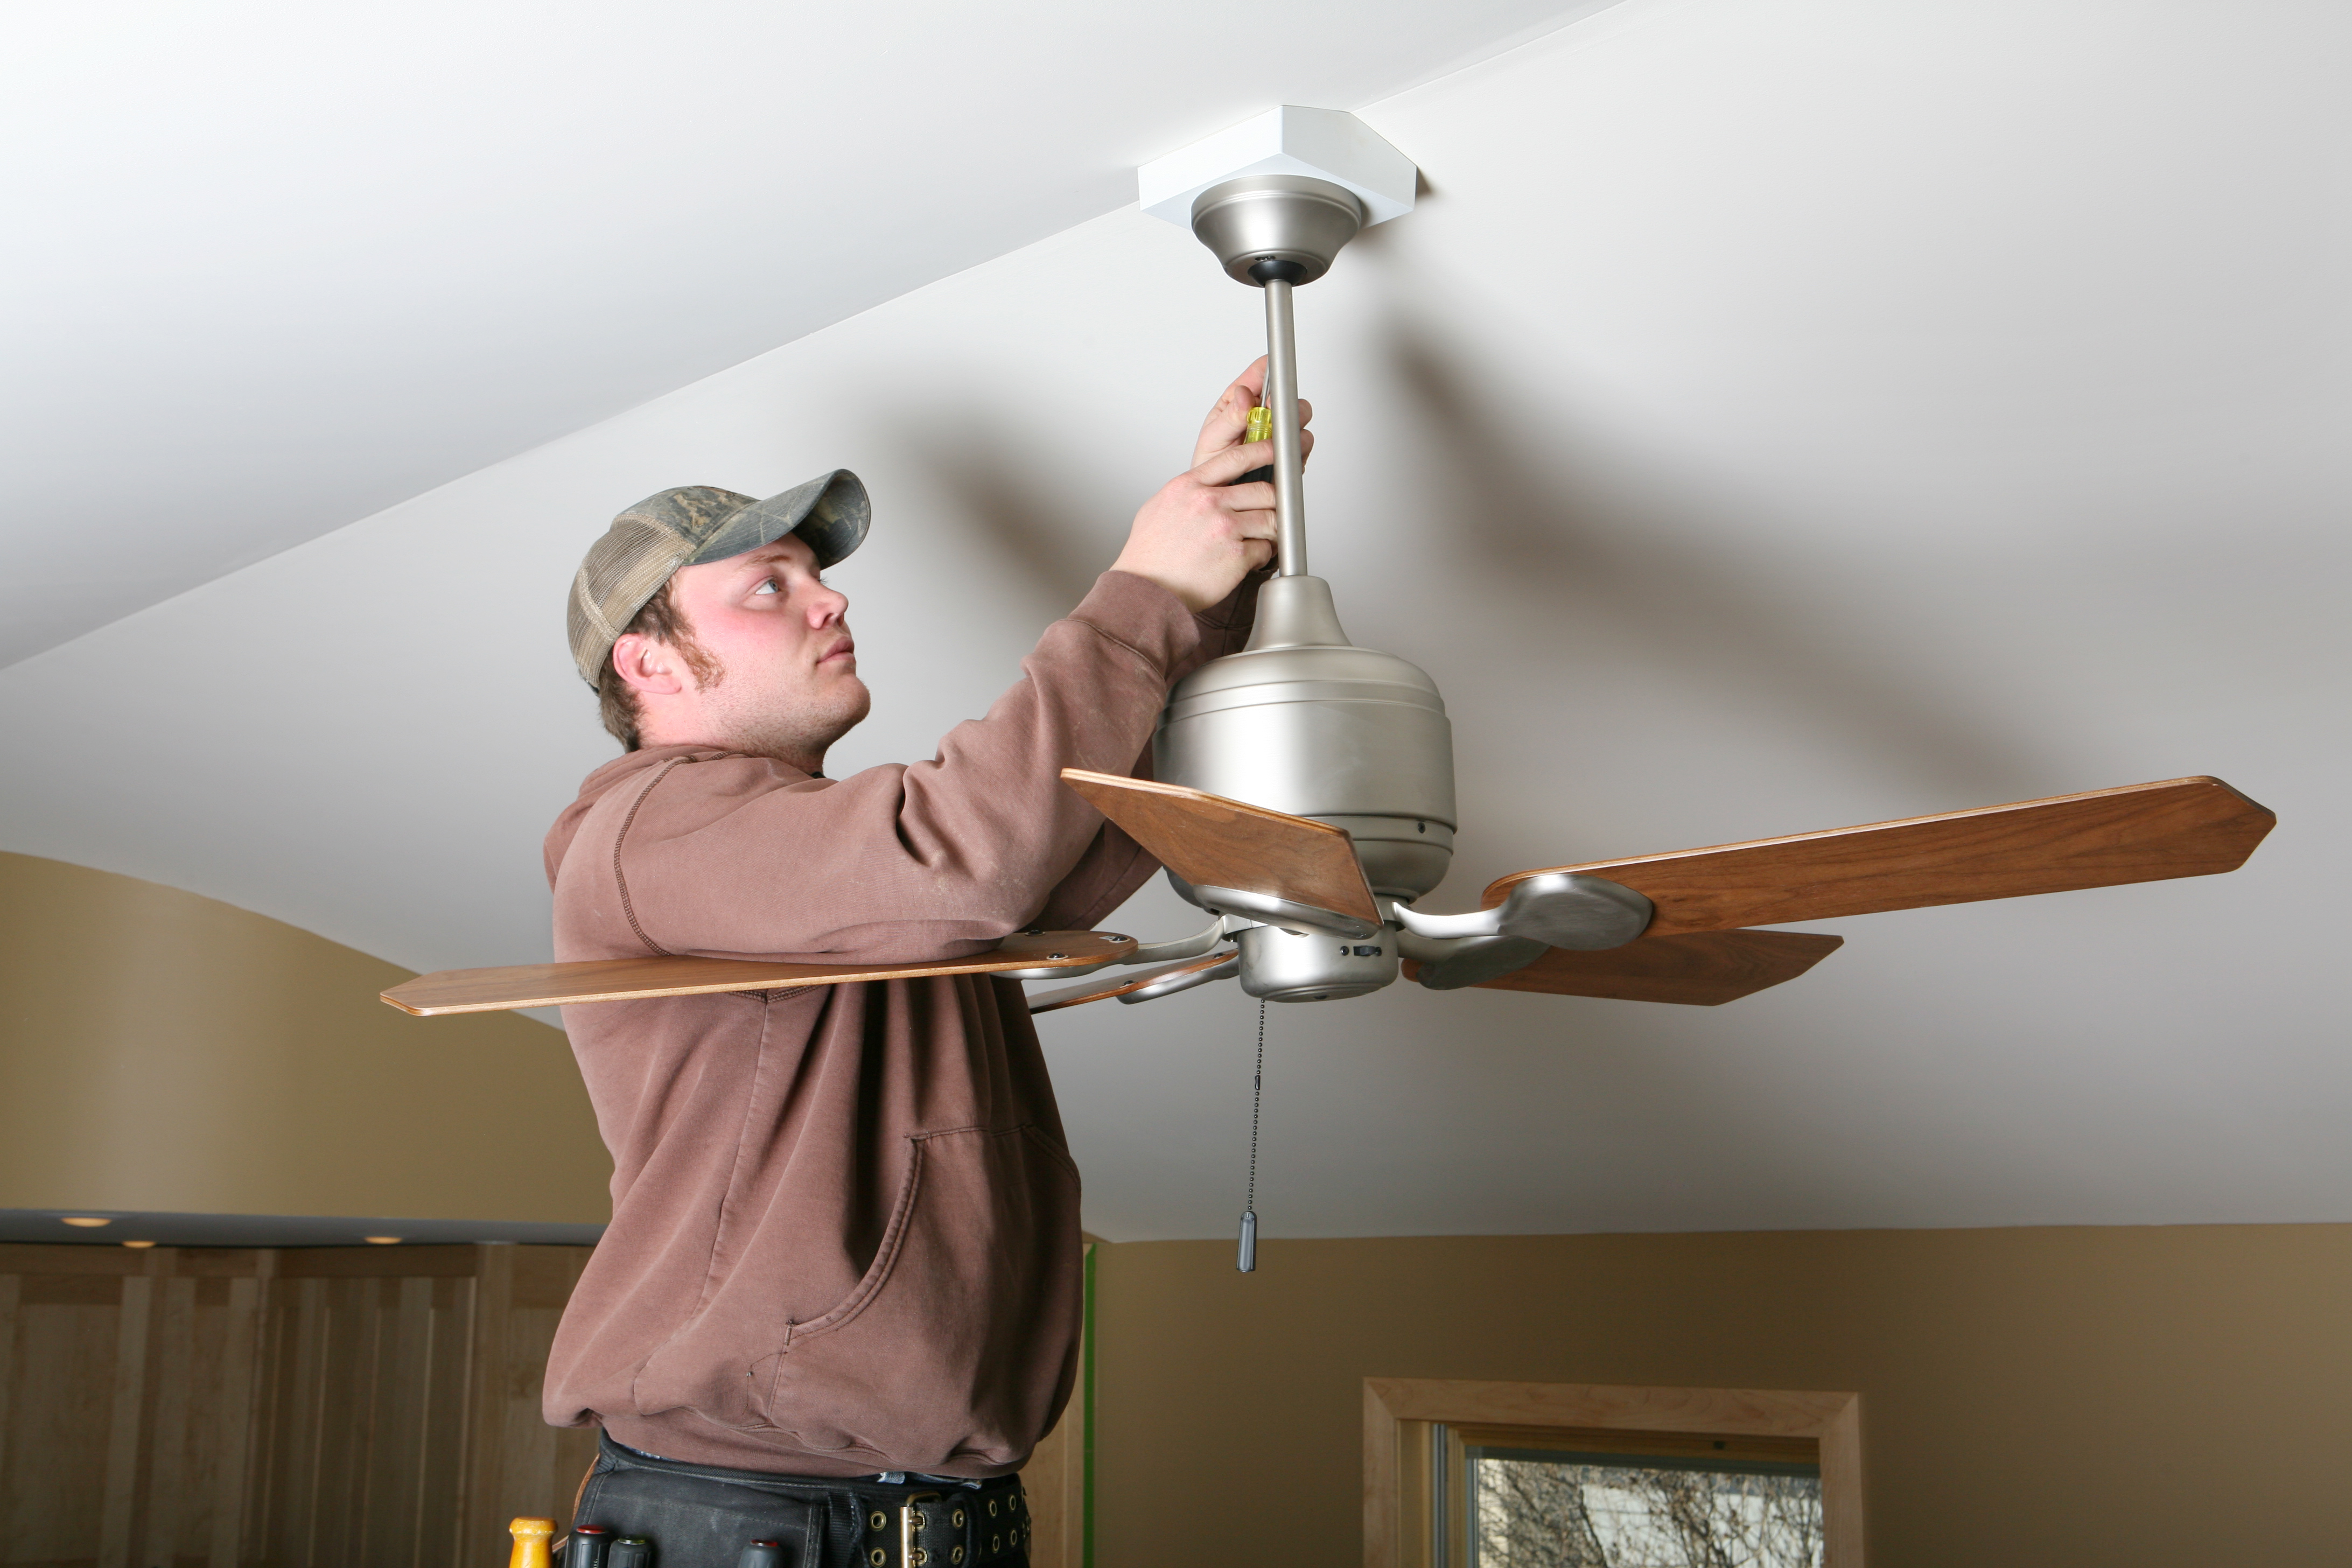 How To Install A Ceiling Fan In A Location Without Existing Power Hunker